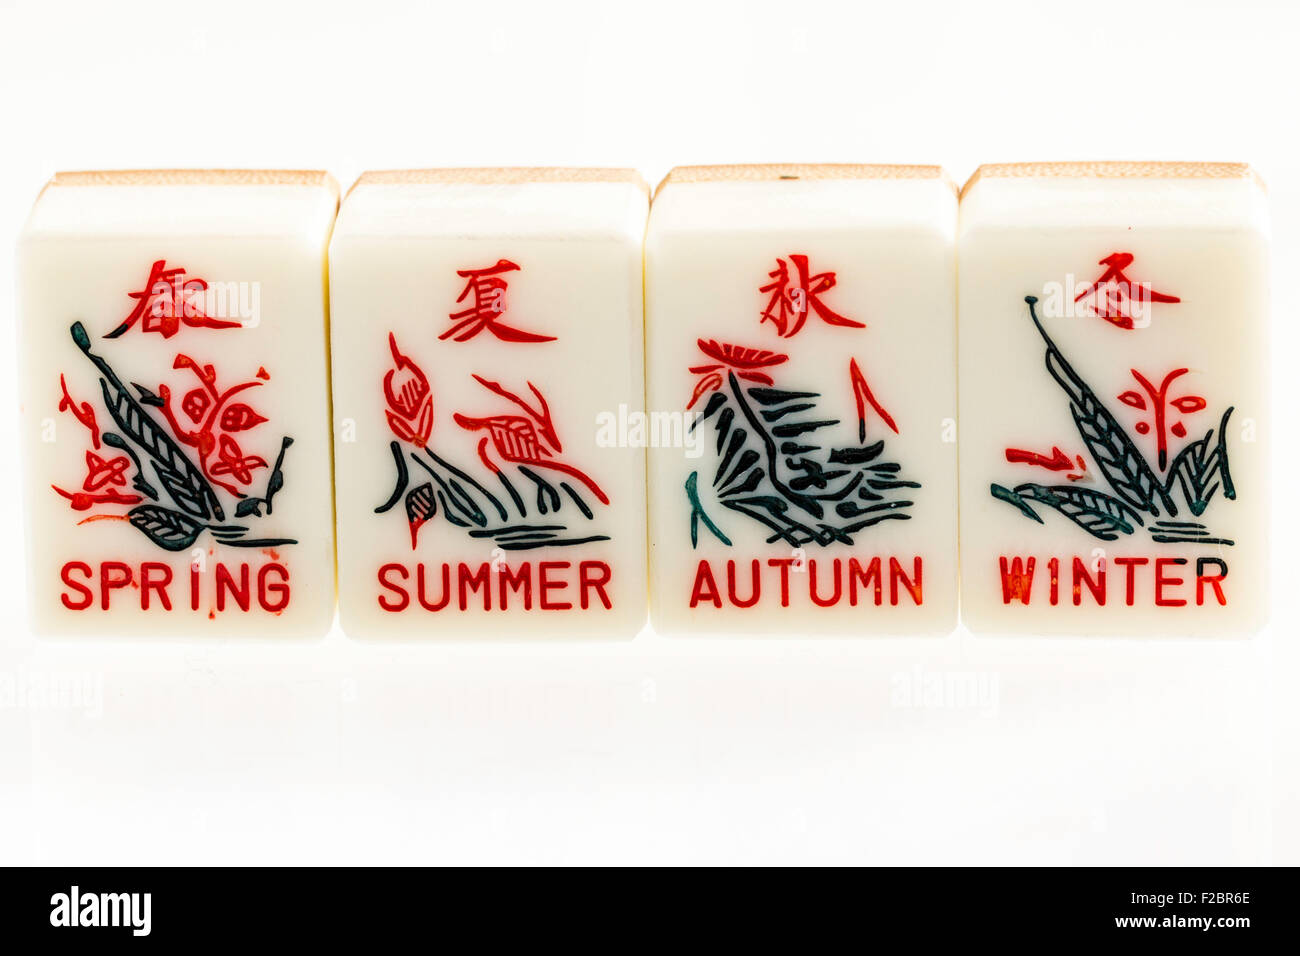 Malaysia or Singapore, Mahjong set, season set of cards or tiles, spring, summer, autumn and winter on plain white - Stock Image